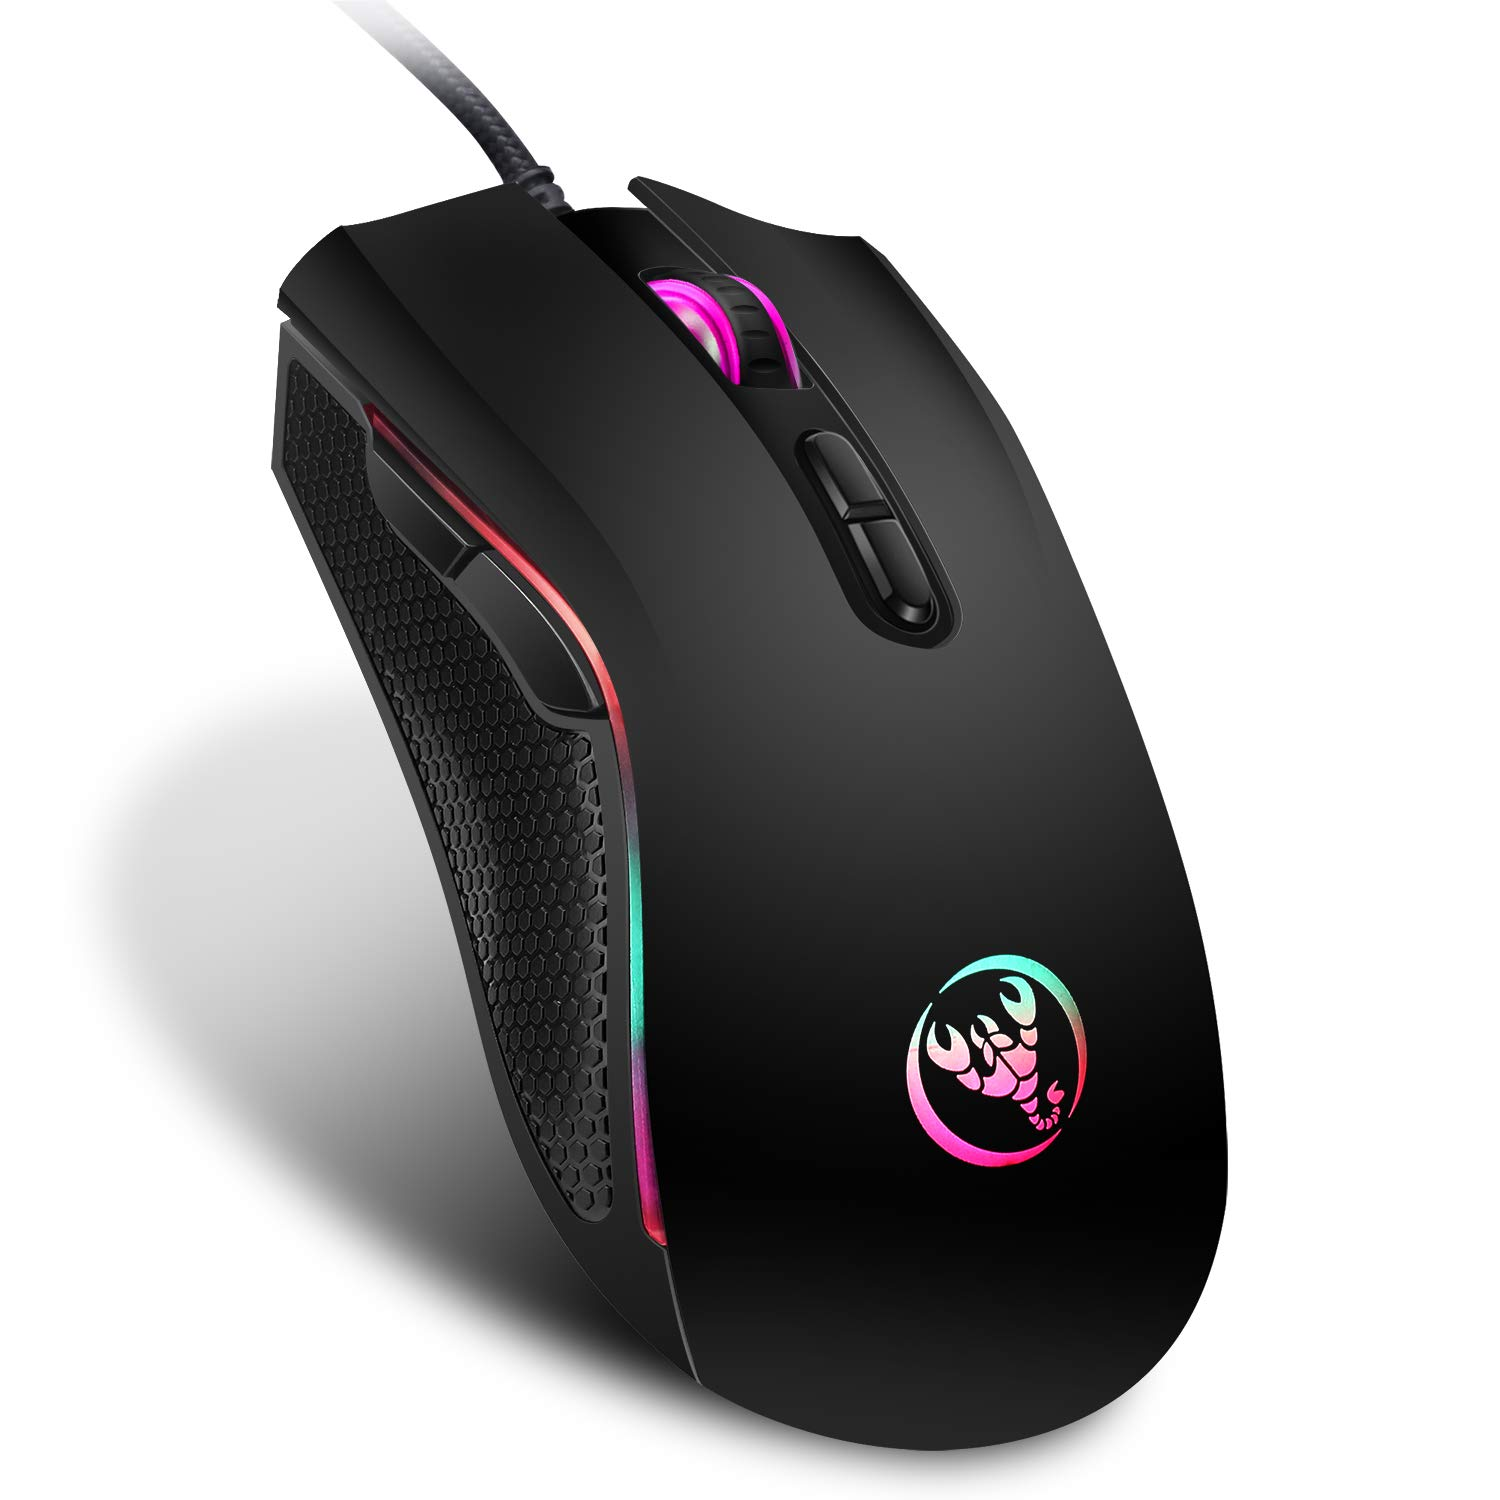 HXSJ A869 Gaming Mouse Wired,7 Programmable Buttons, 7 Bright Colors LED and Ergonomics Design for Comfortable Touch, 3200 DPI Adjustable,Black Black